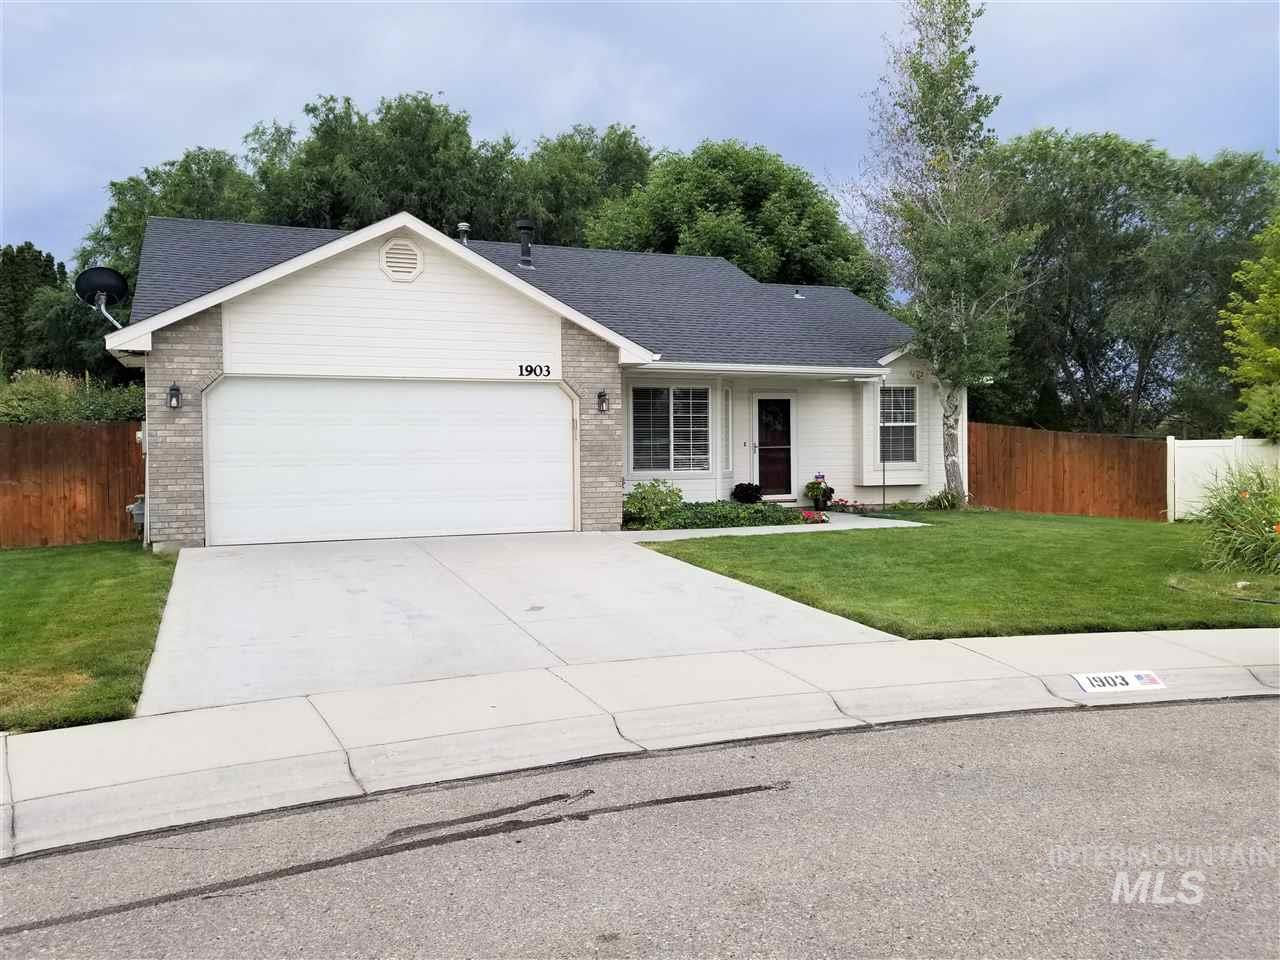 1903 E Lost River Ave, Nampa, Idaho 83686, 3 Bedrooms, 2 Bathrooms, Residential For Sale, Price $244,900, 98738464